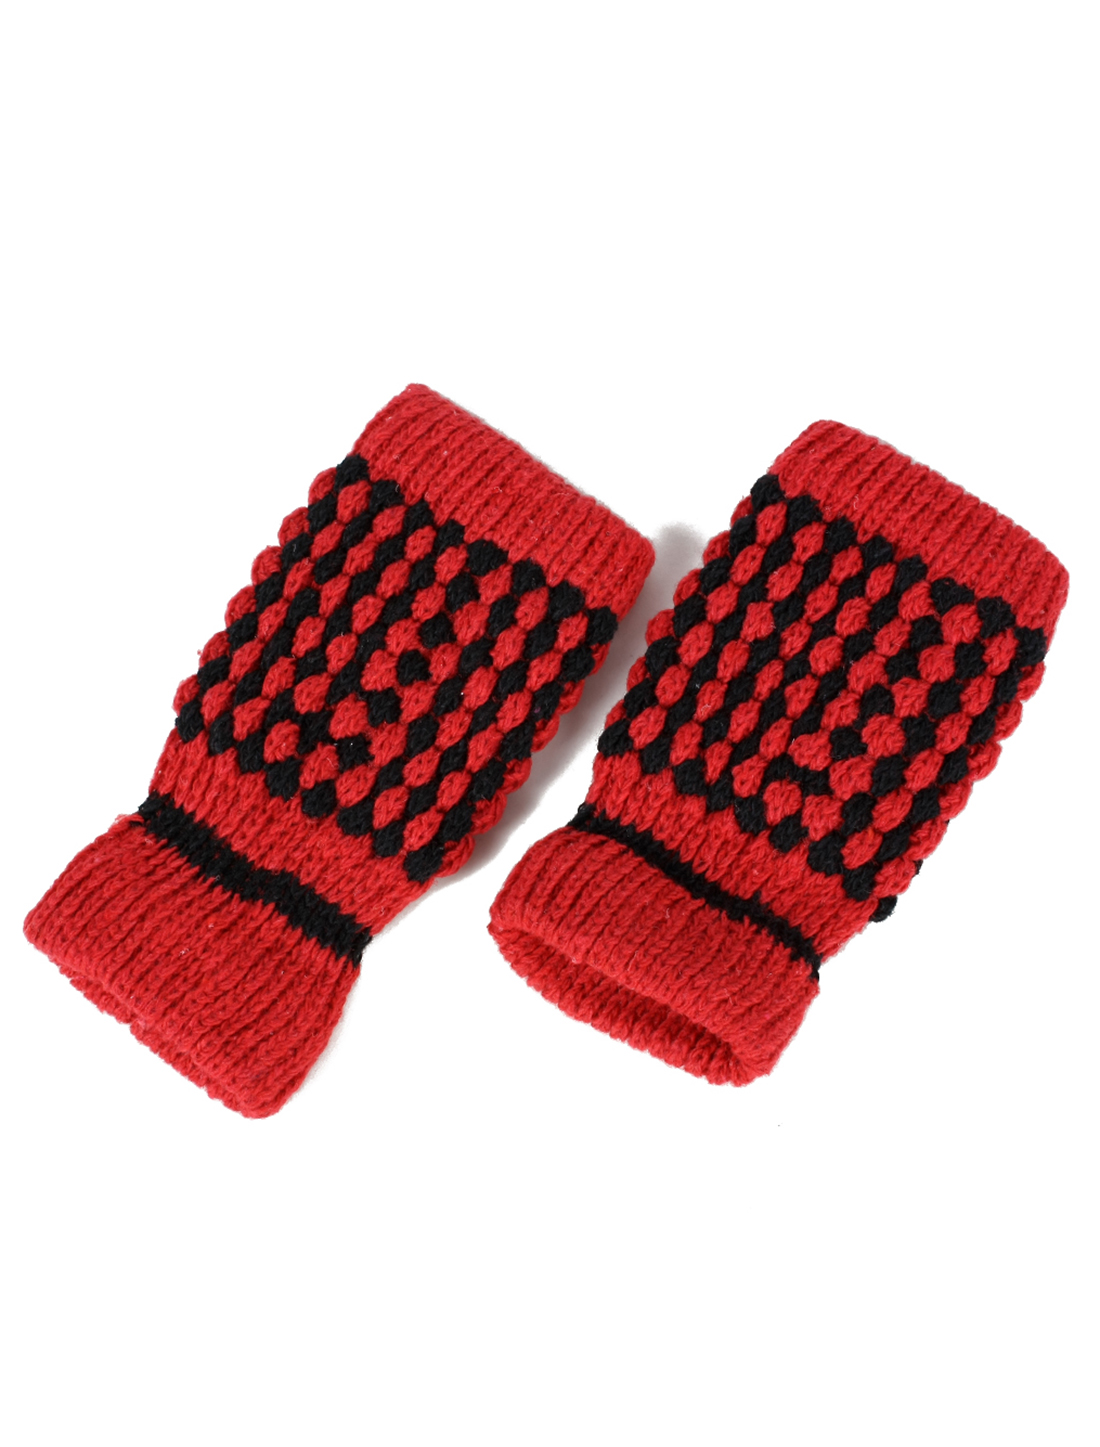 Pair Ladies Hand Knitted Chunky hand warmers Fingerless Gloves